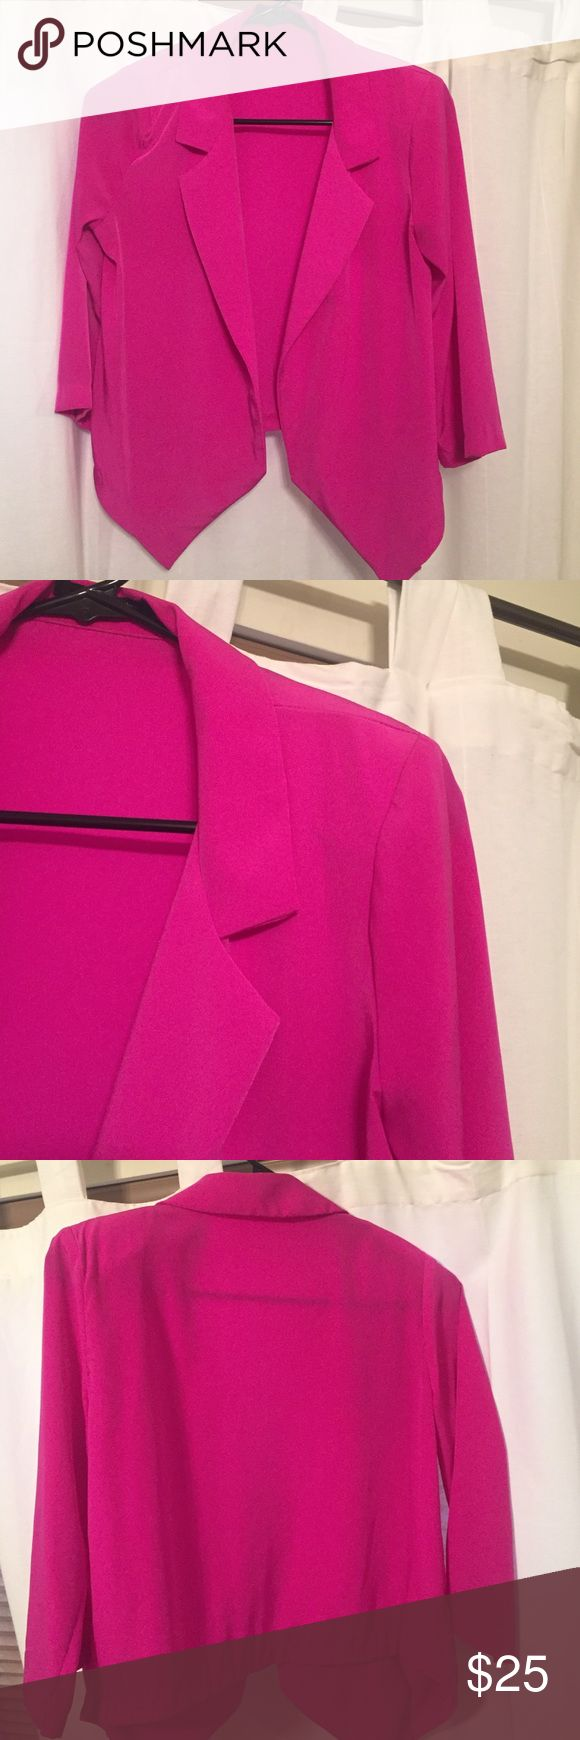 Hot pink blazer Thin but nice soft material. Hot pink cropped blazer with shoulder pad detail. Fits super cute. Foreign Exchange Jackets & Coats Blazers